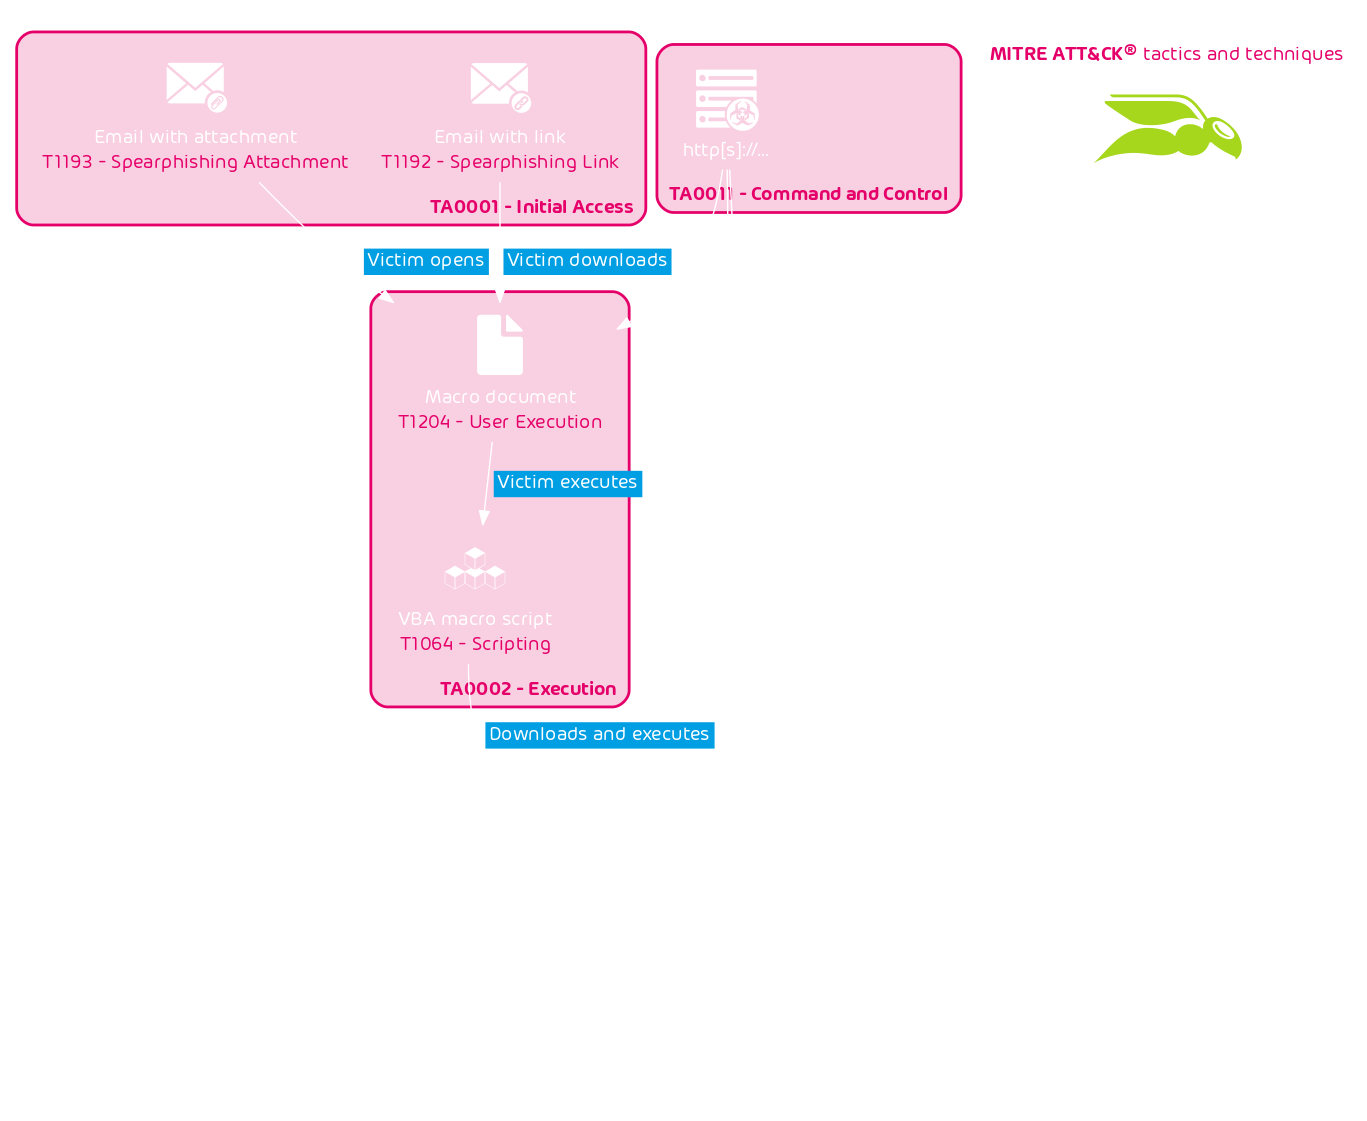 Infection chain of email-based ransomware attack